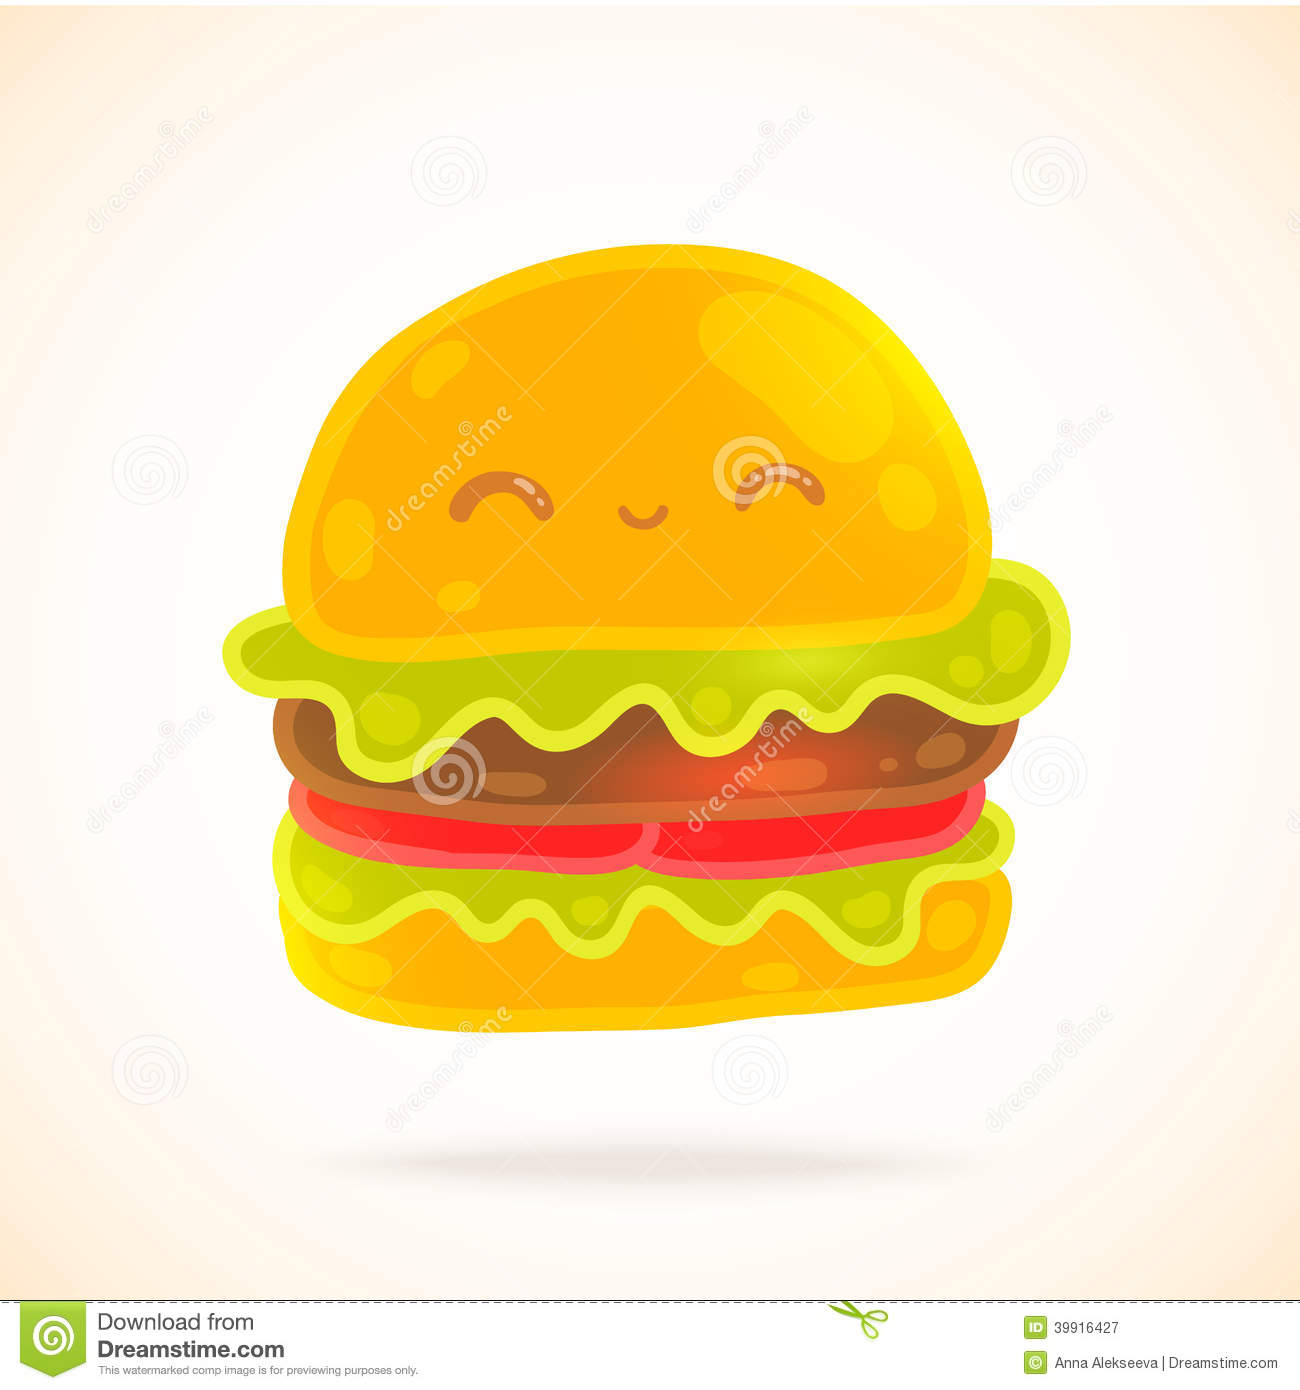 Cute funny cartoon hamburger with eyes smiling stock vector image 39916427 - Stylish cooking ...